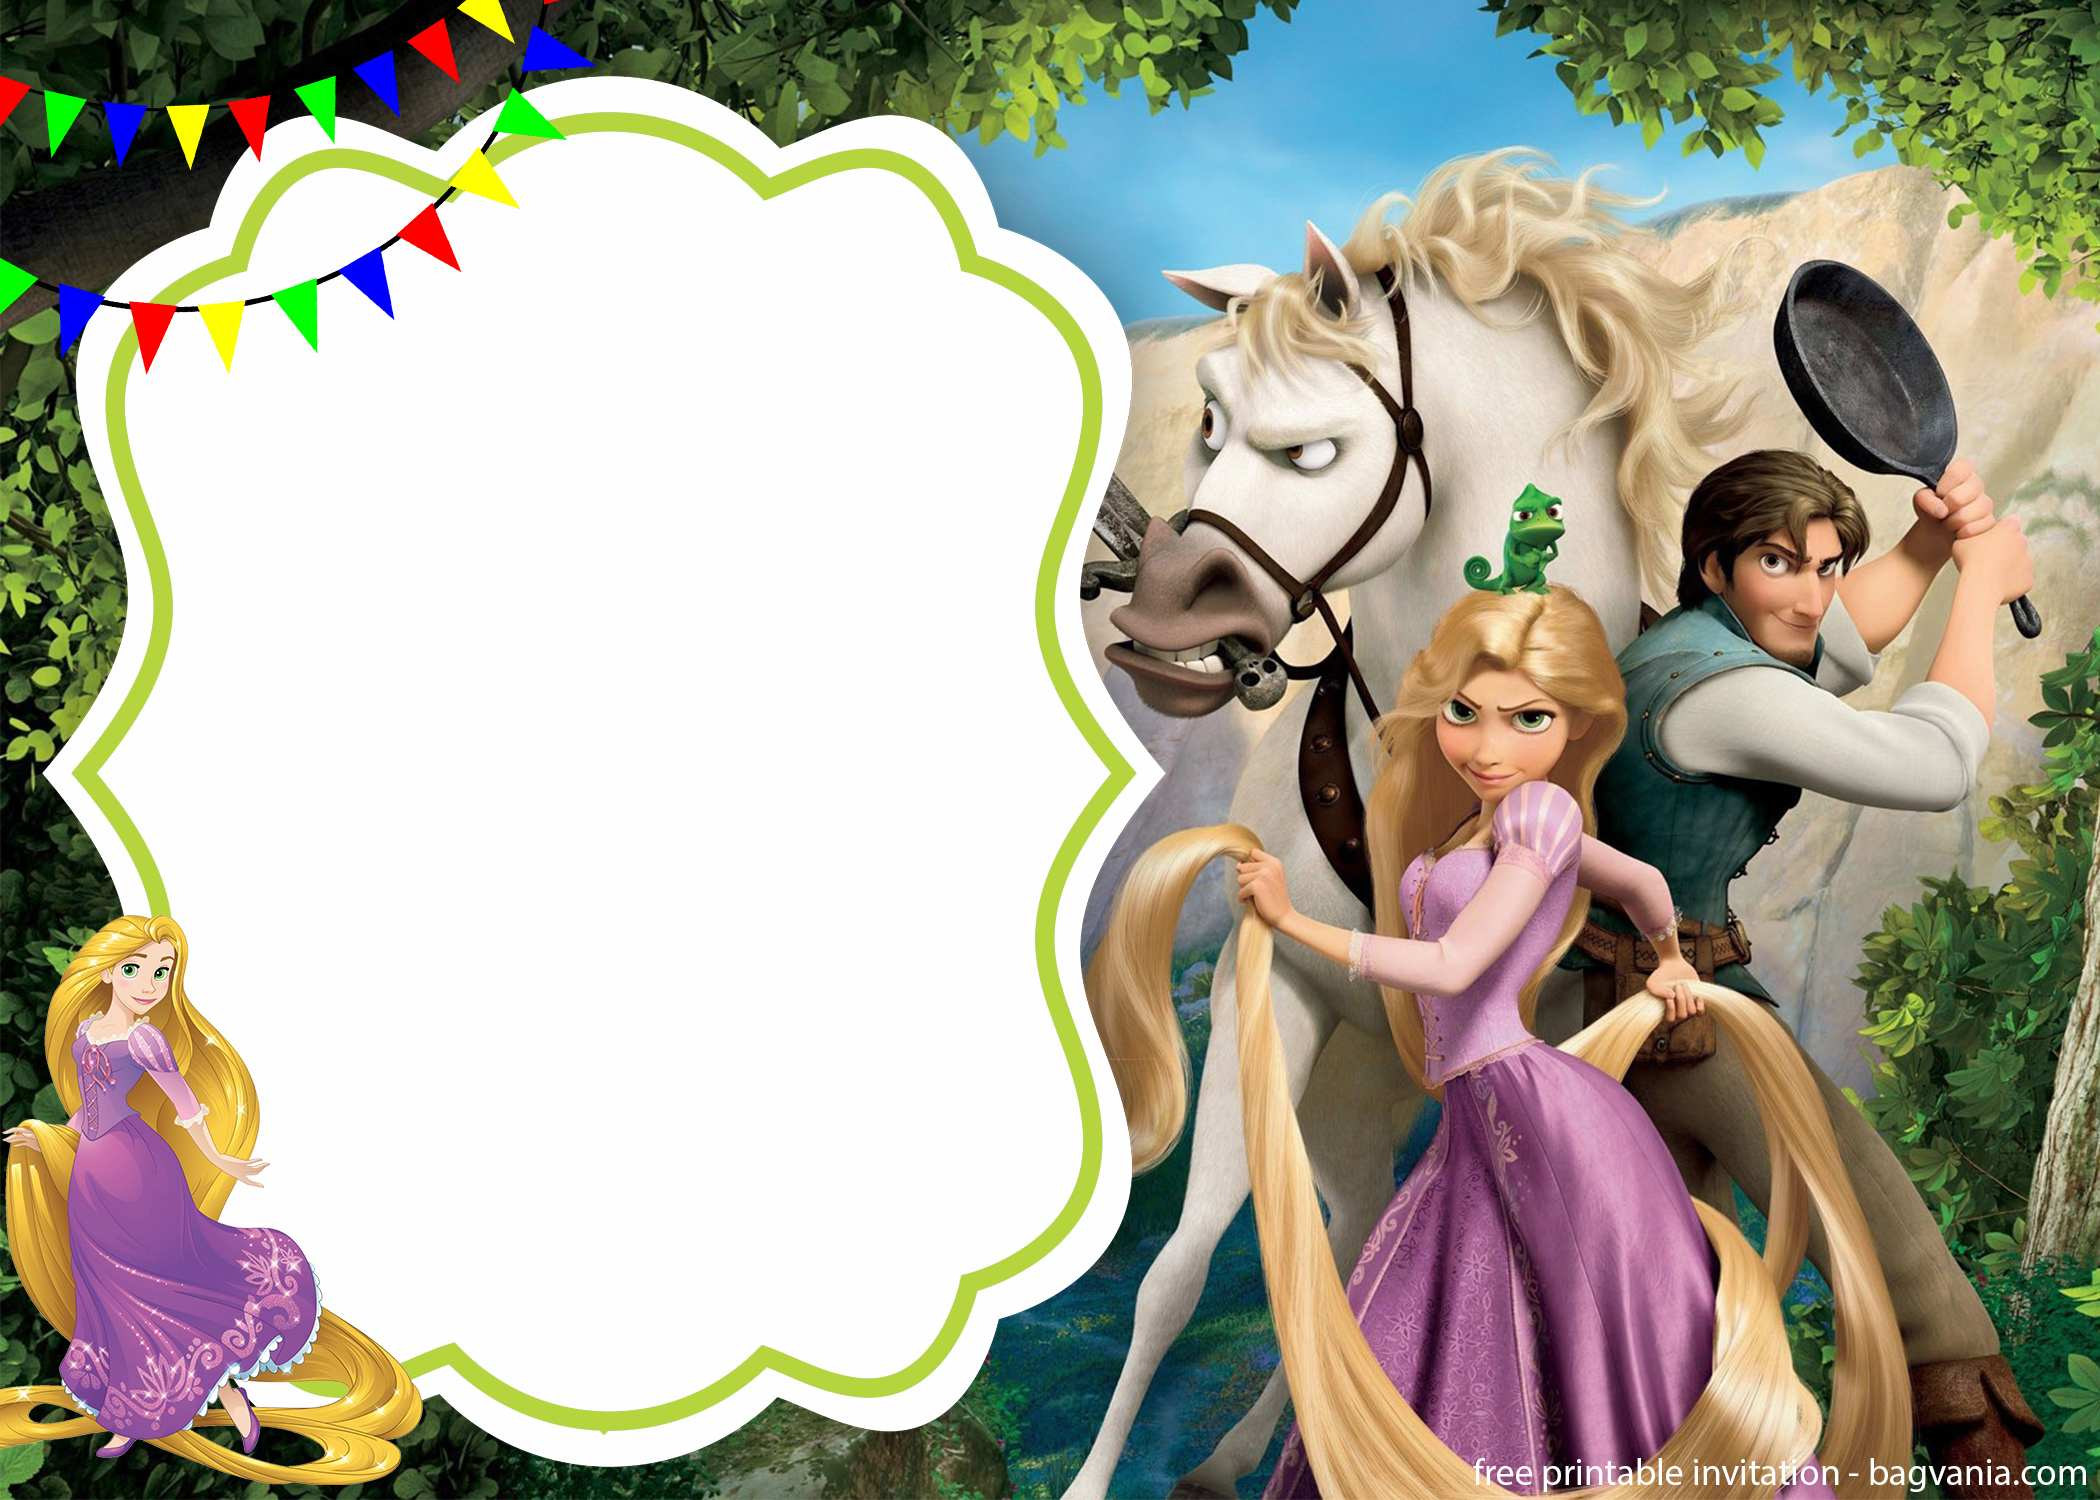 You Can Also Do The Printing Part At Your Home Using Regular Printer Before Royal Rapunzel Invitation Template